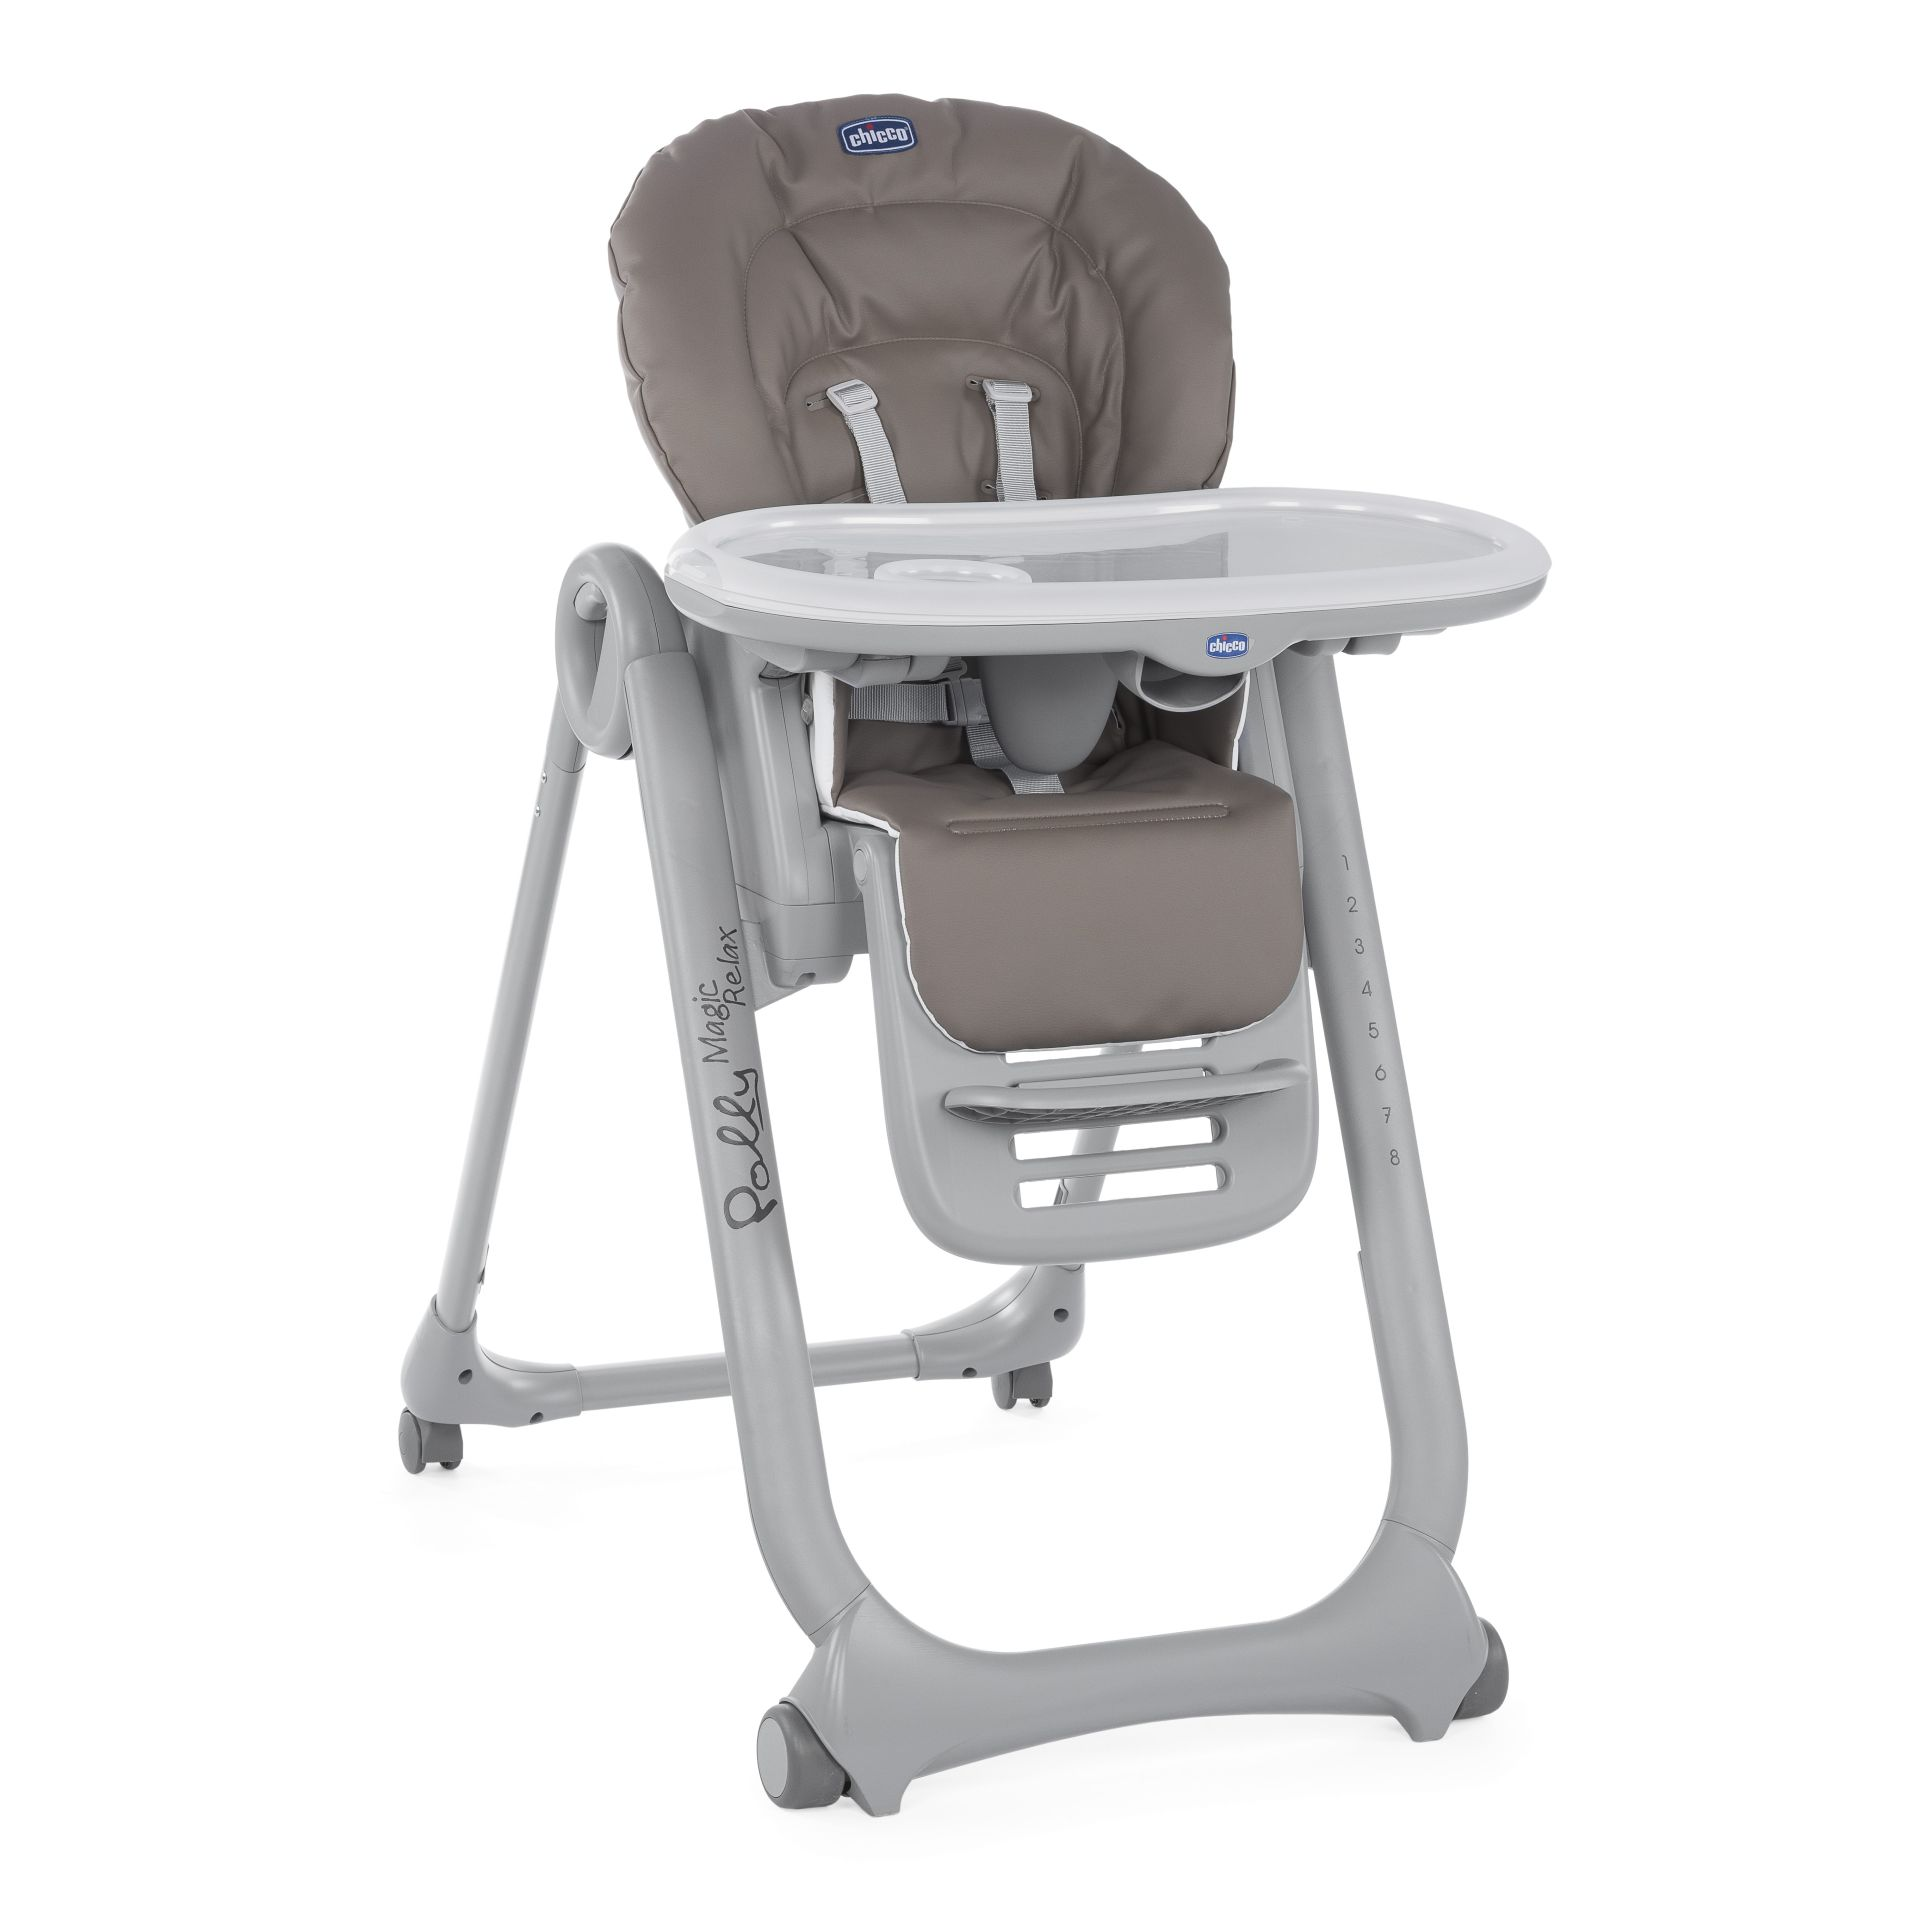 4moms high chair types of couches and chairs chicco highchair polly magic relax 2018 dove grey - buy at kidsroom | living & sleeping